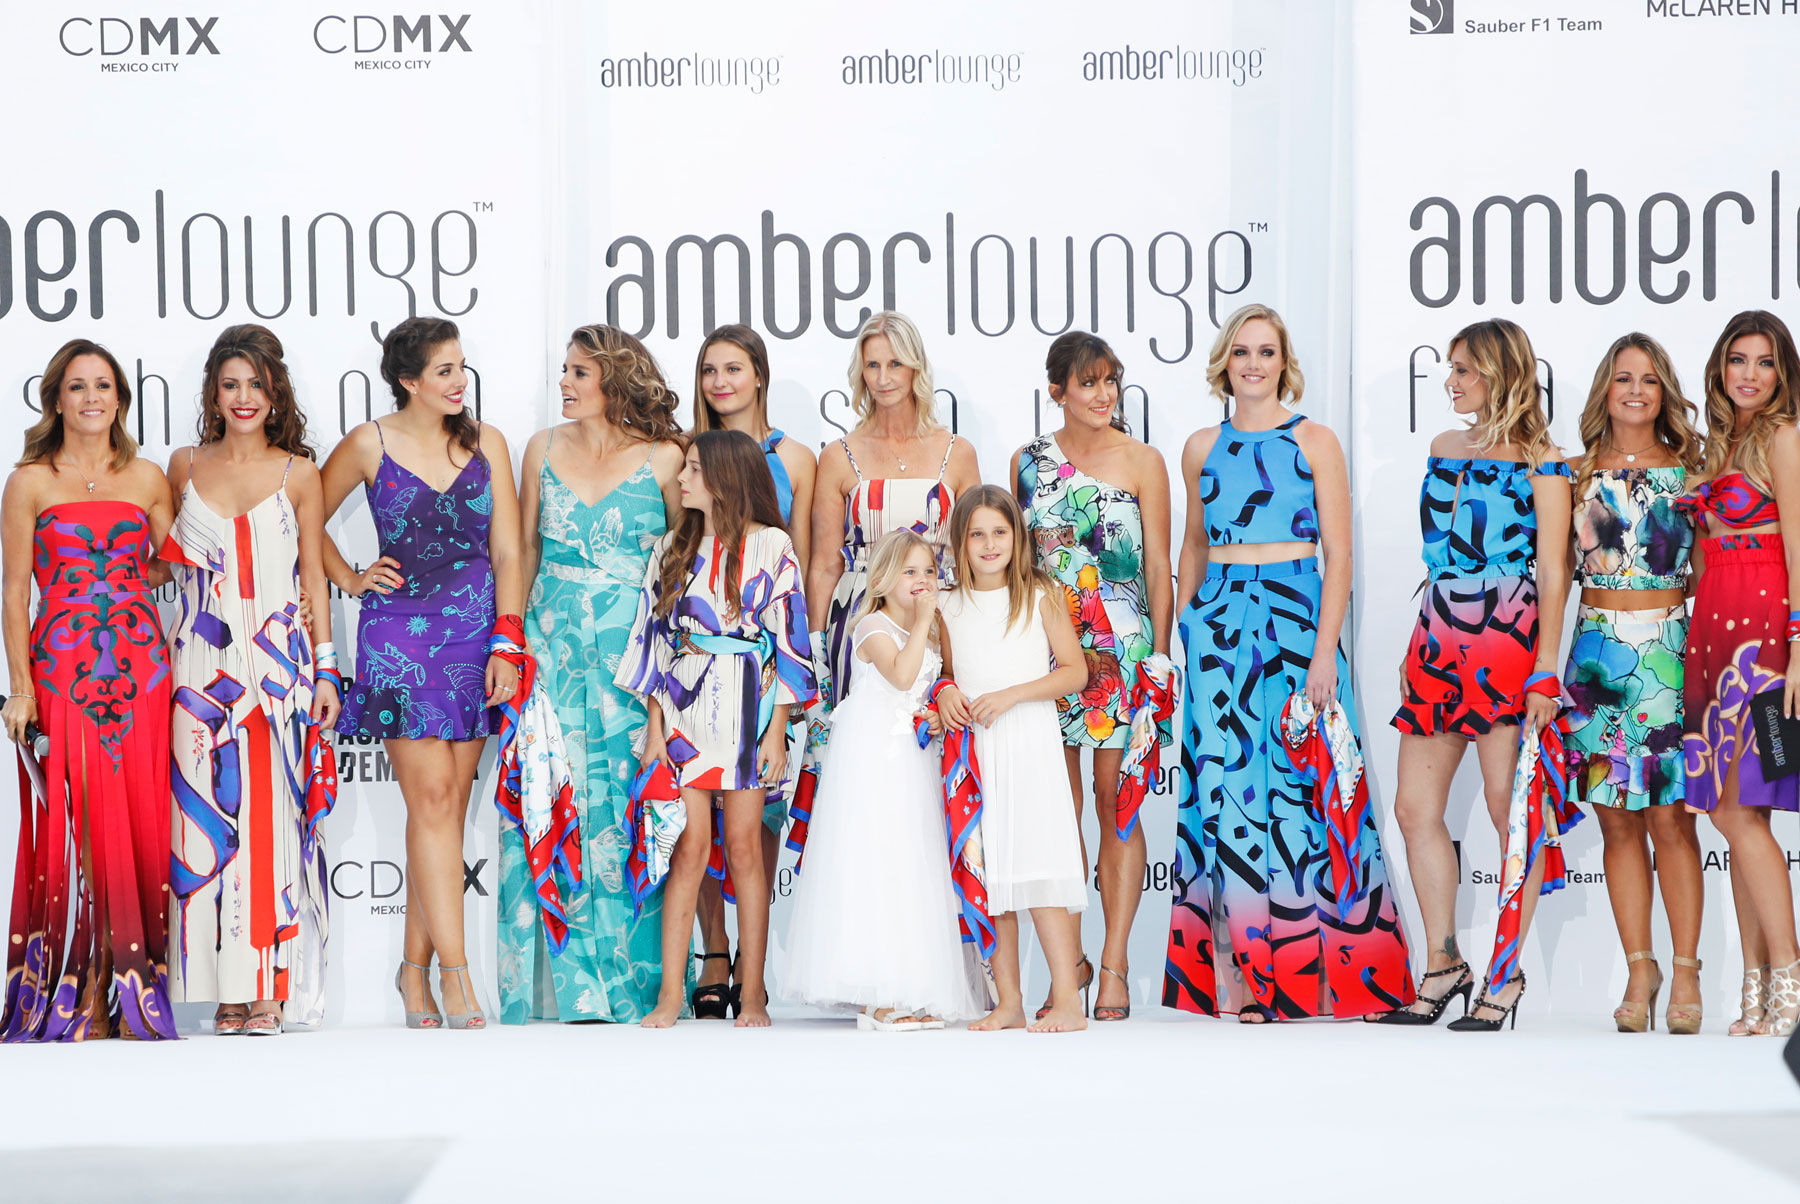 Amber Lounge Fashion's Big Night Out Gets The Monaco Grand Prix Started